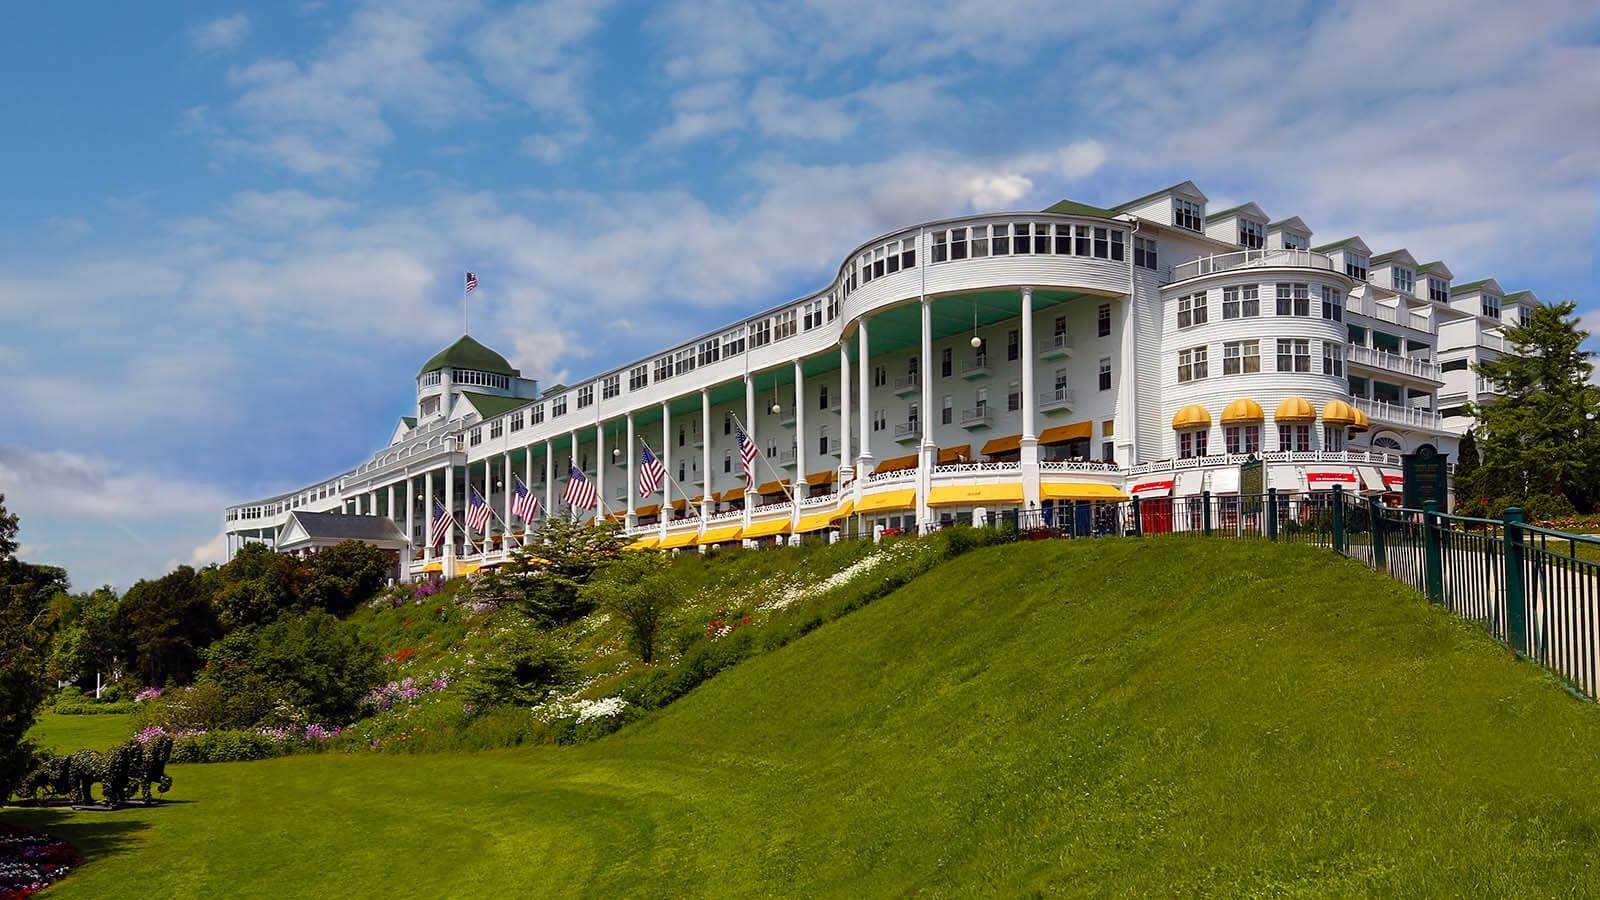 Daytime exterior of the Grand Hotel in Mackinac Island, Michigan.